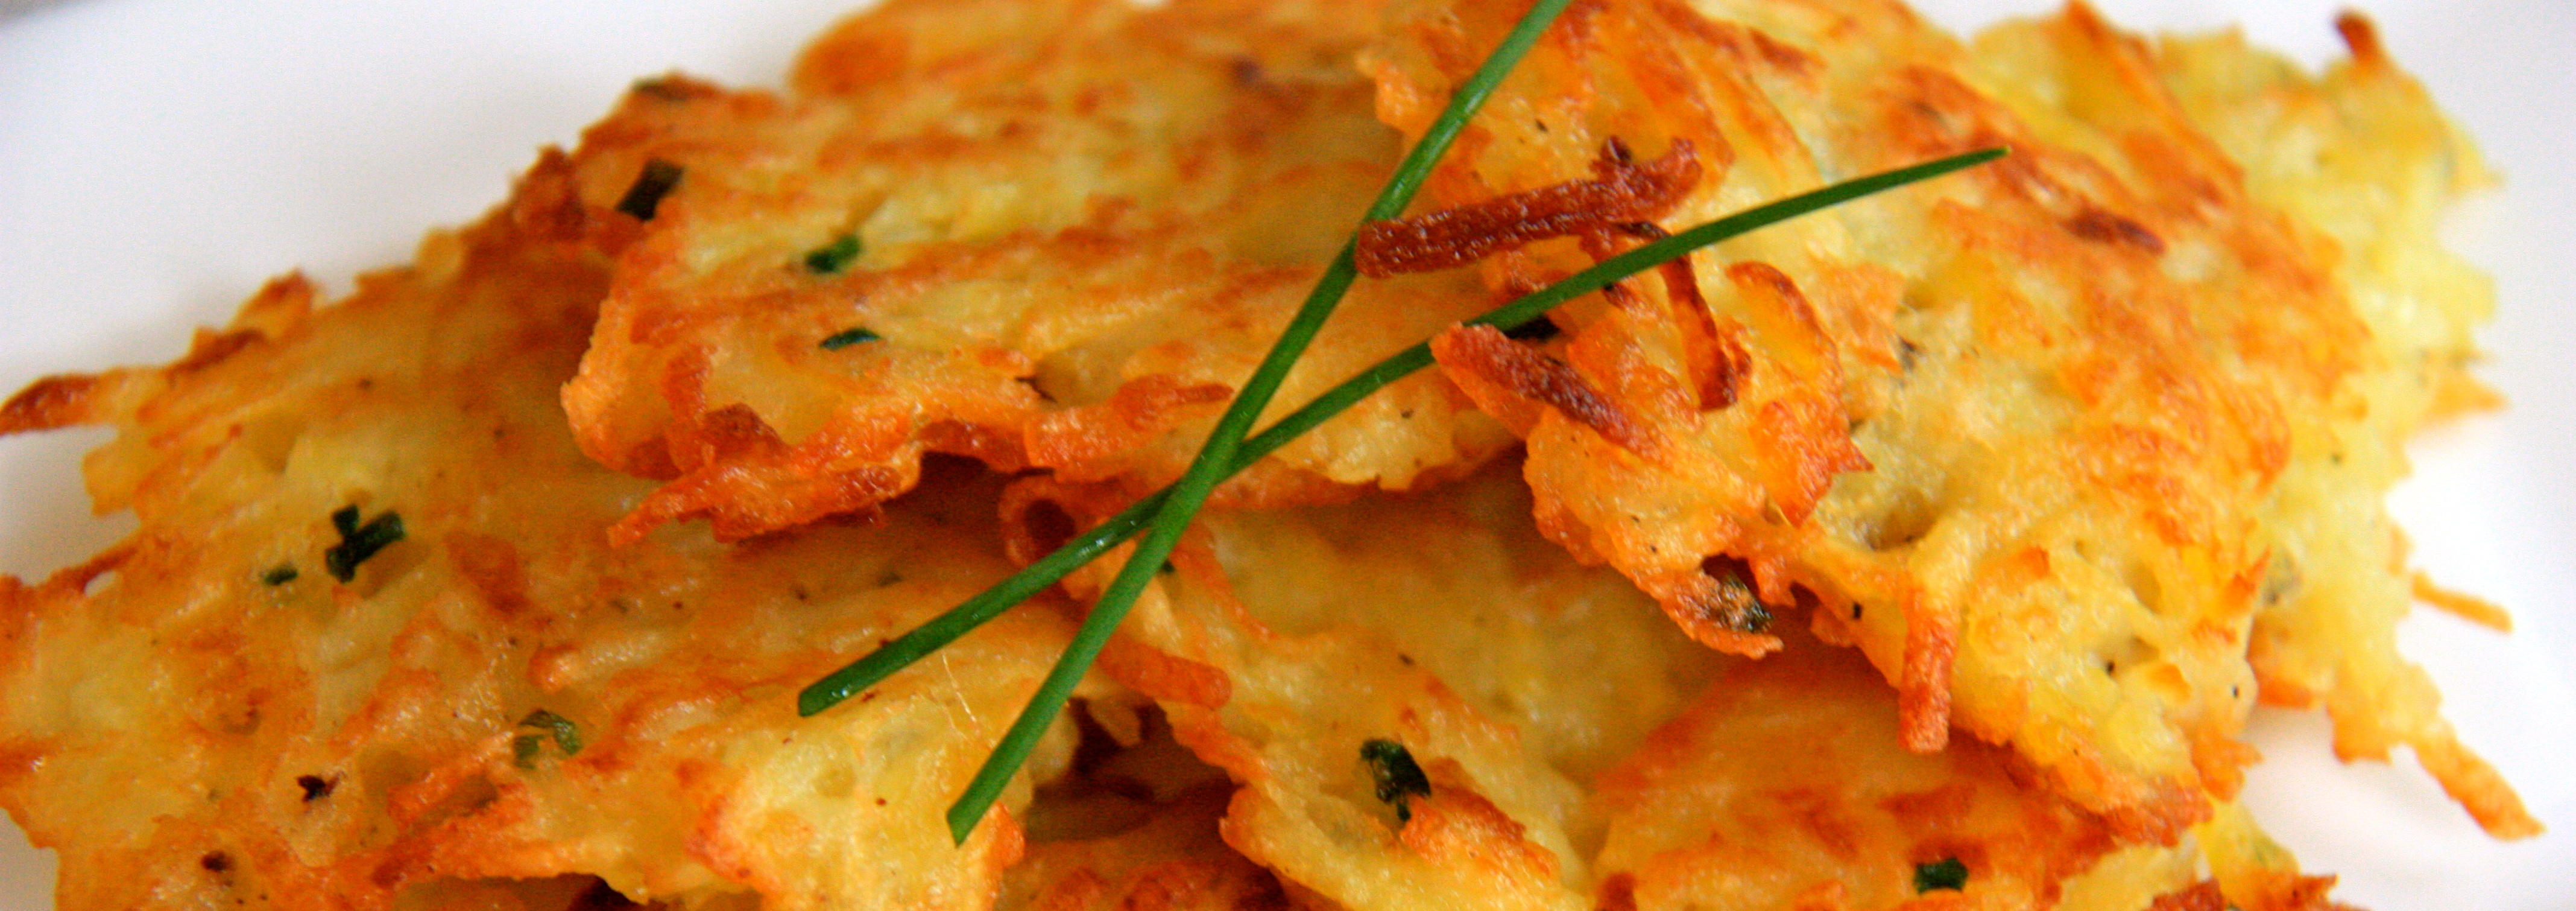 jpg potato chive pancake pin it mini potato pancakes potato chive ...